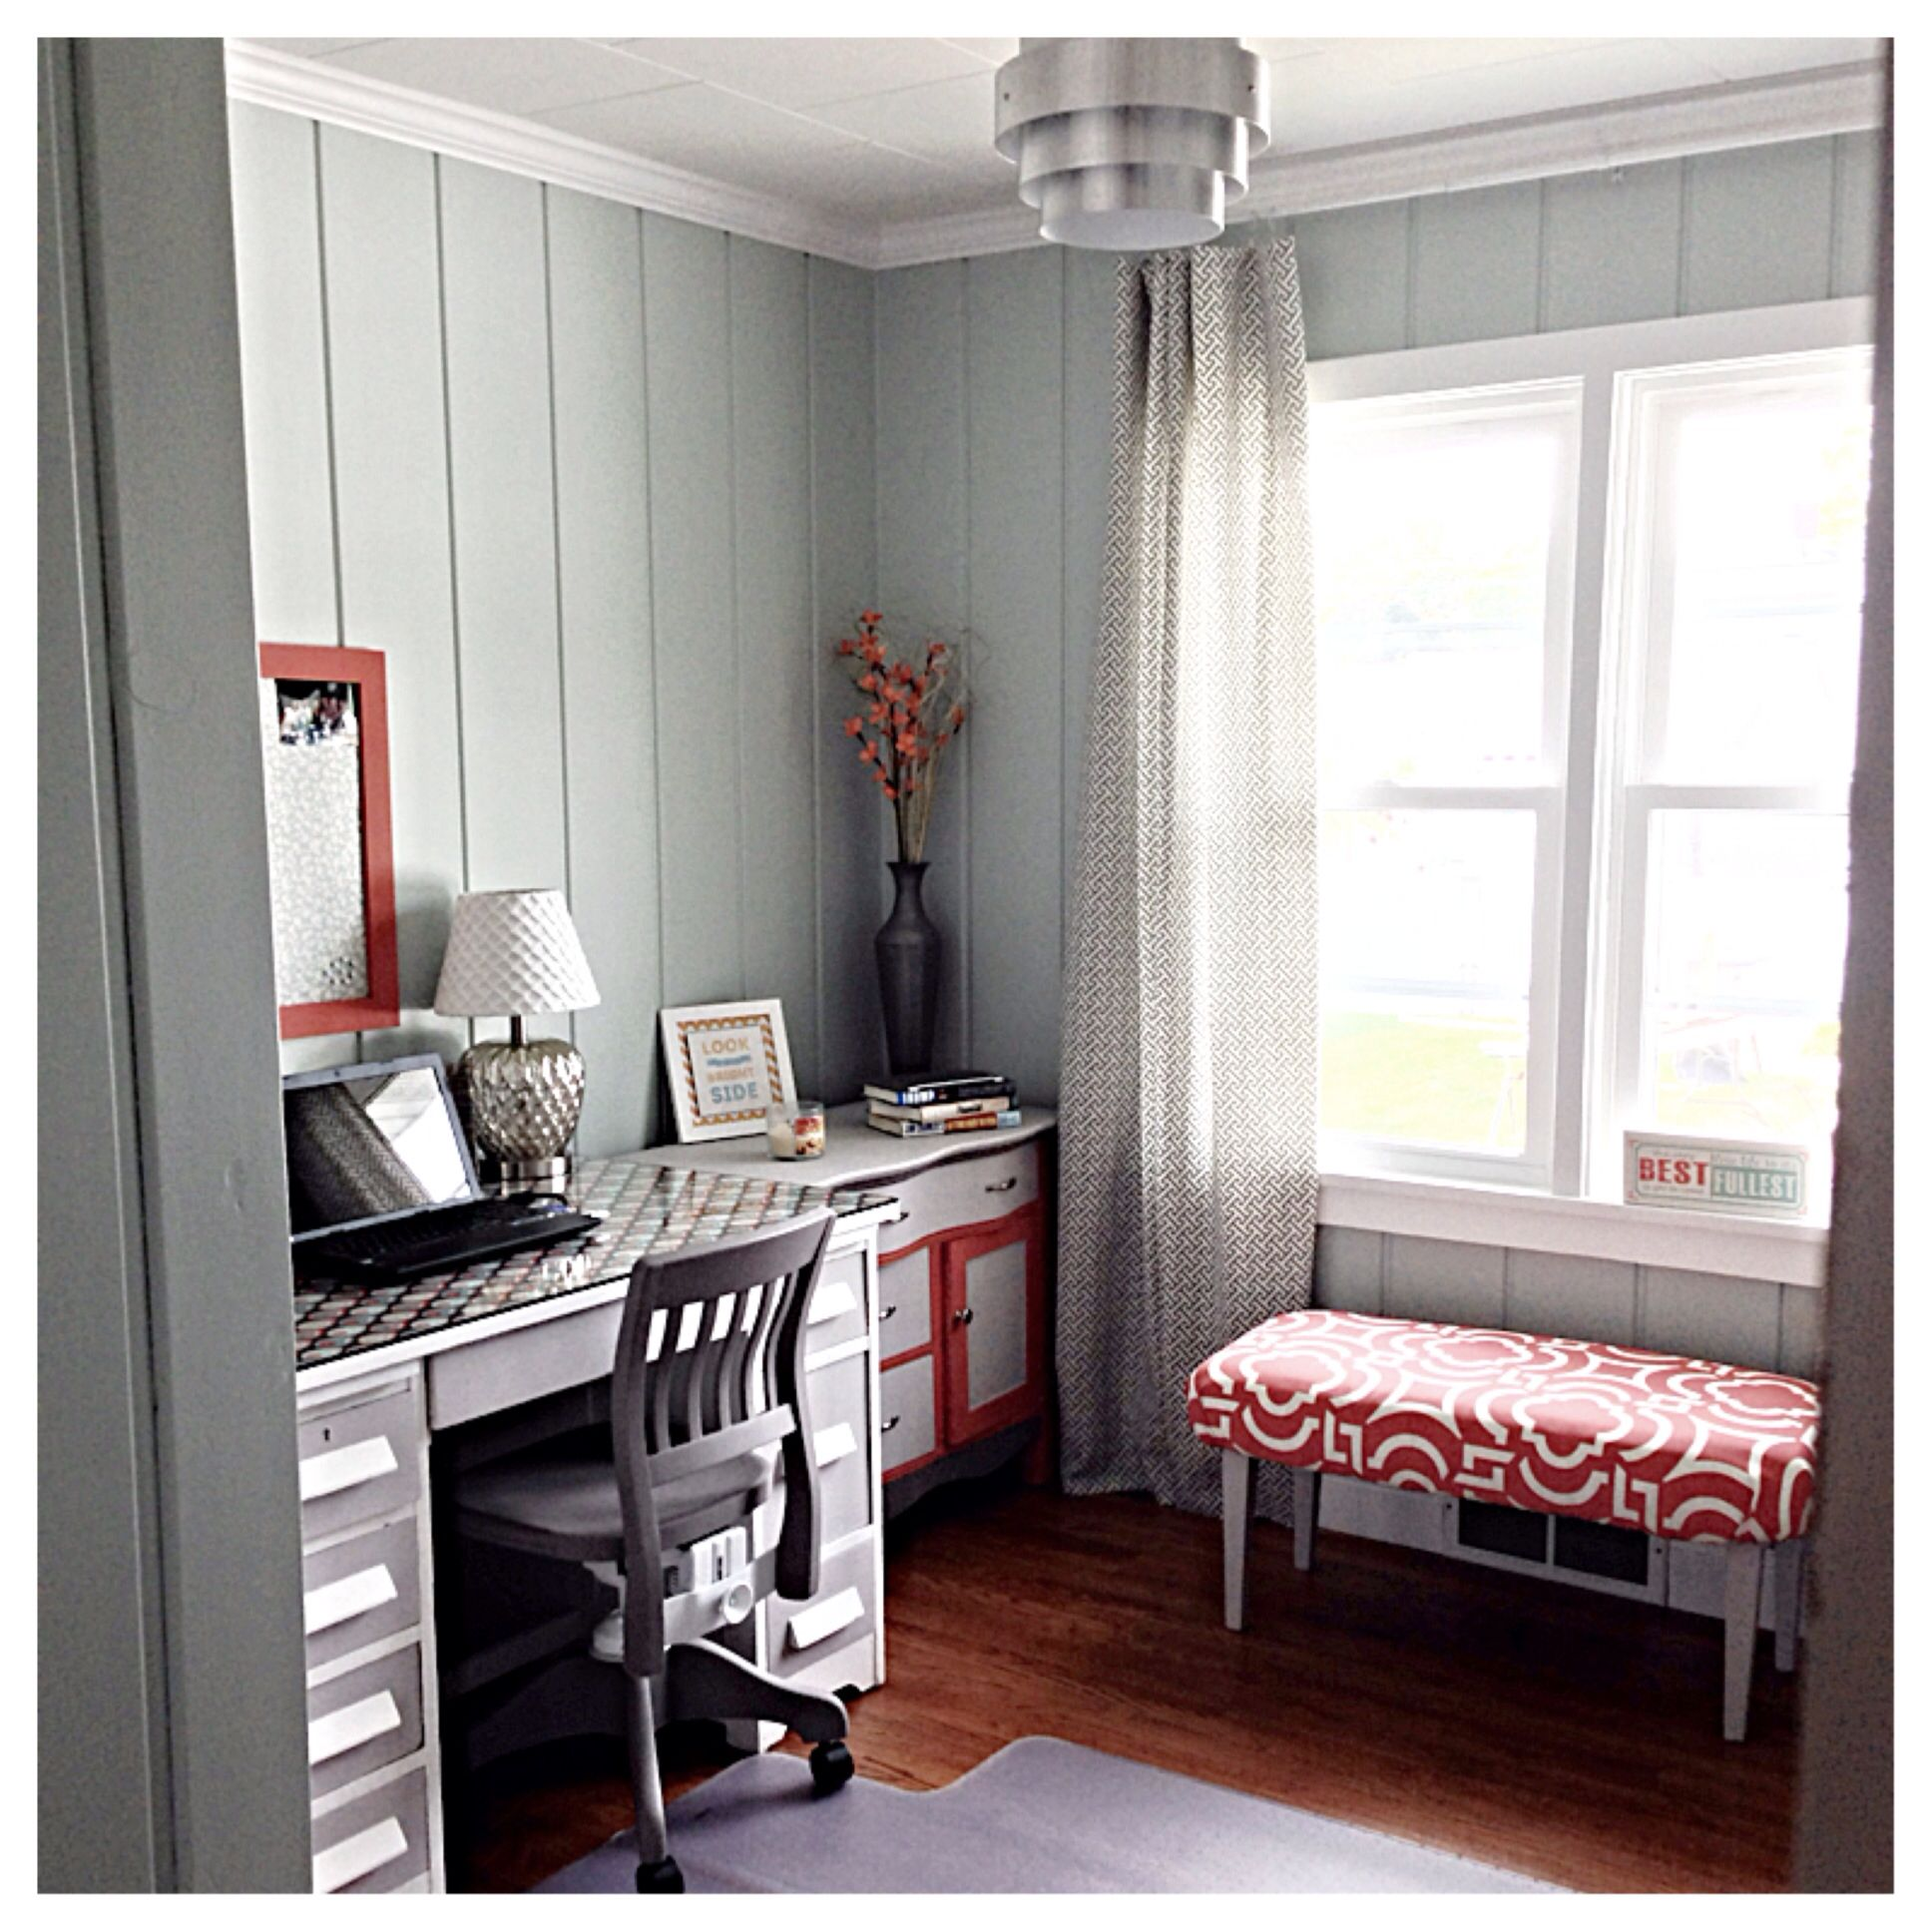 Office Sherwin Williams Sea Salt Chalk Painted Desk With Homemade Chalk Paint Diy Bench And Curtains Painted Desk Chalk Paint Desk Homemade Chalk Paint